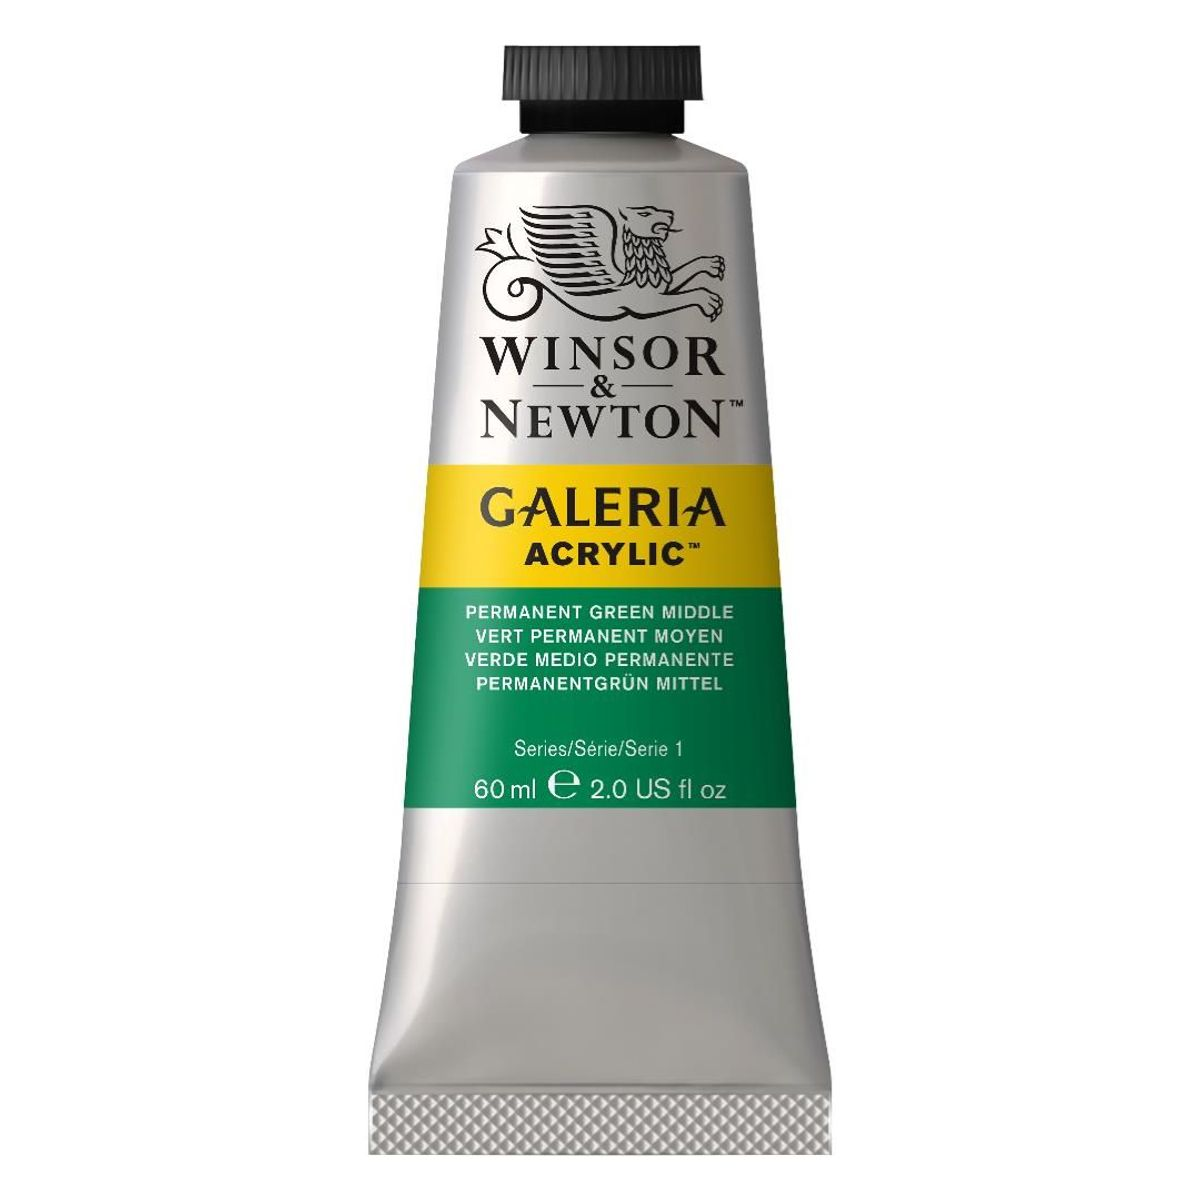 WINSOR AND NEWTON GALERIA ACRYLIC COLOUR - TUBE OF 60 ML - PERMANENT GREEN MIDDLE (484)